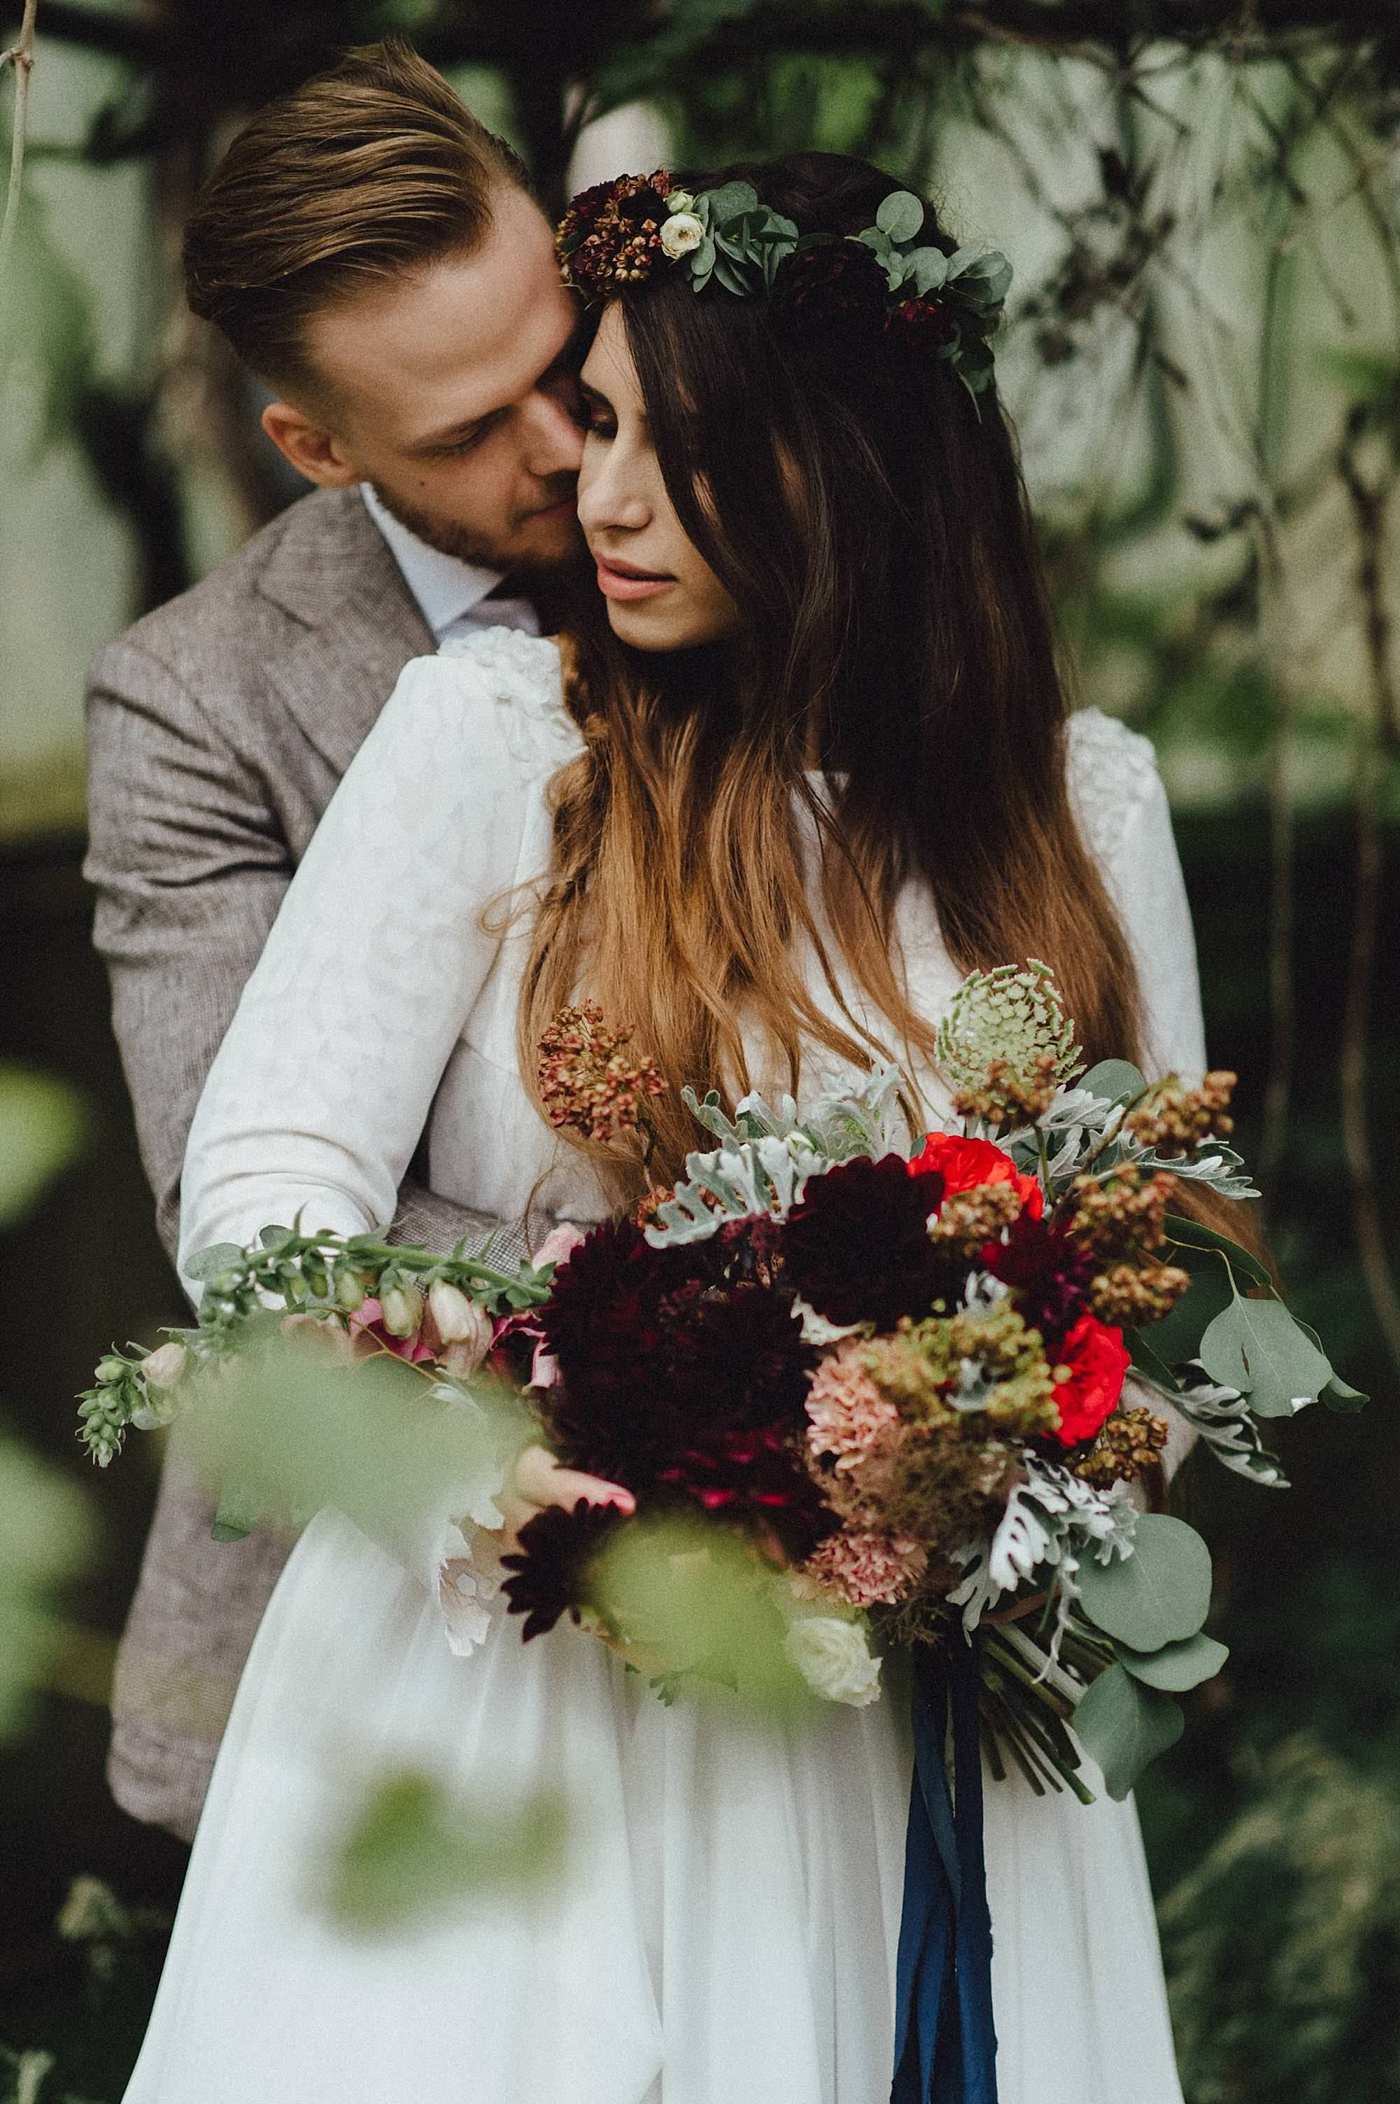 urban-elopement-wedding-197